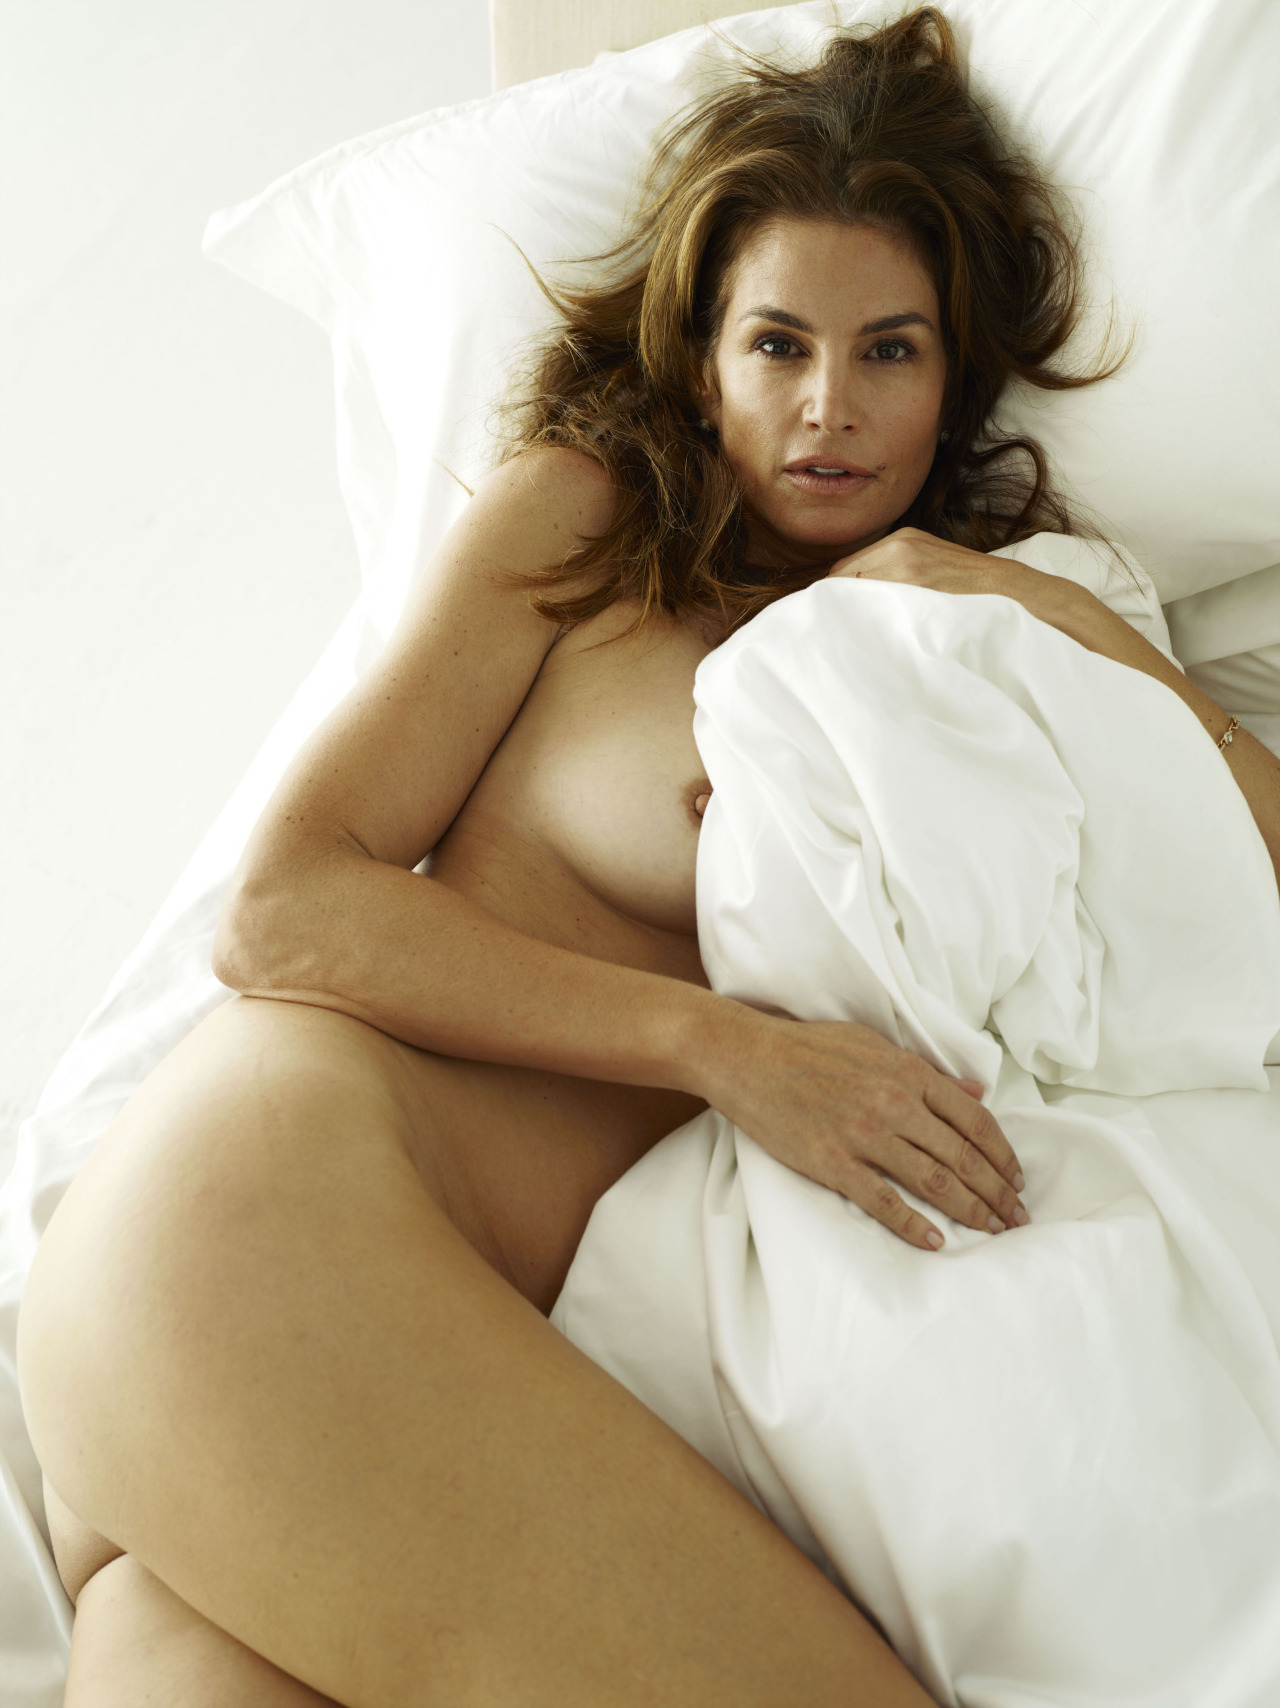 nude and sexiest ever videos